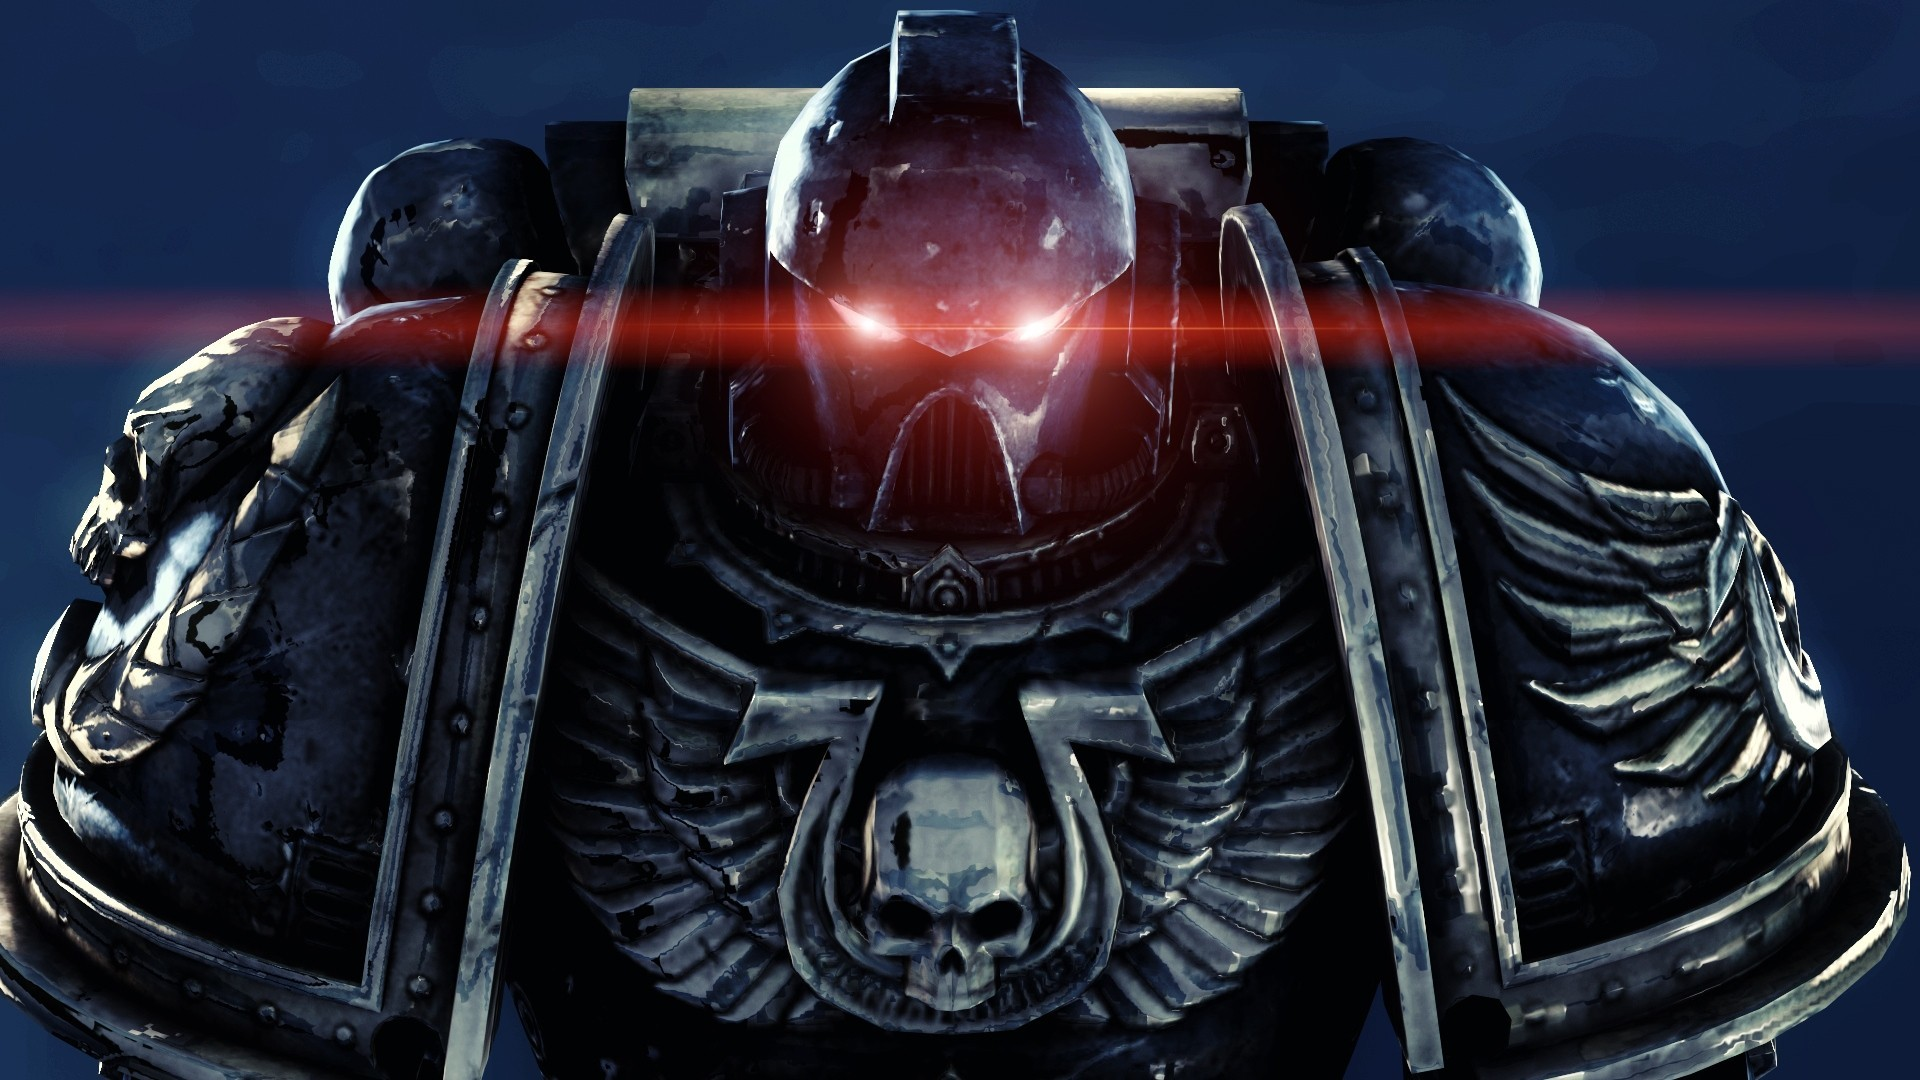 1920x1080 ... warhammer-40k-space-marines-ultramarines-skull-wings-eyes- ...